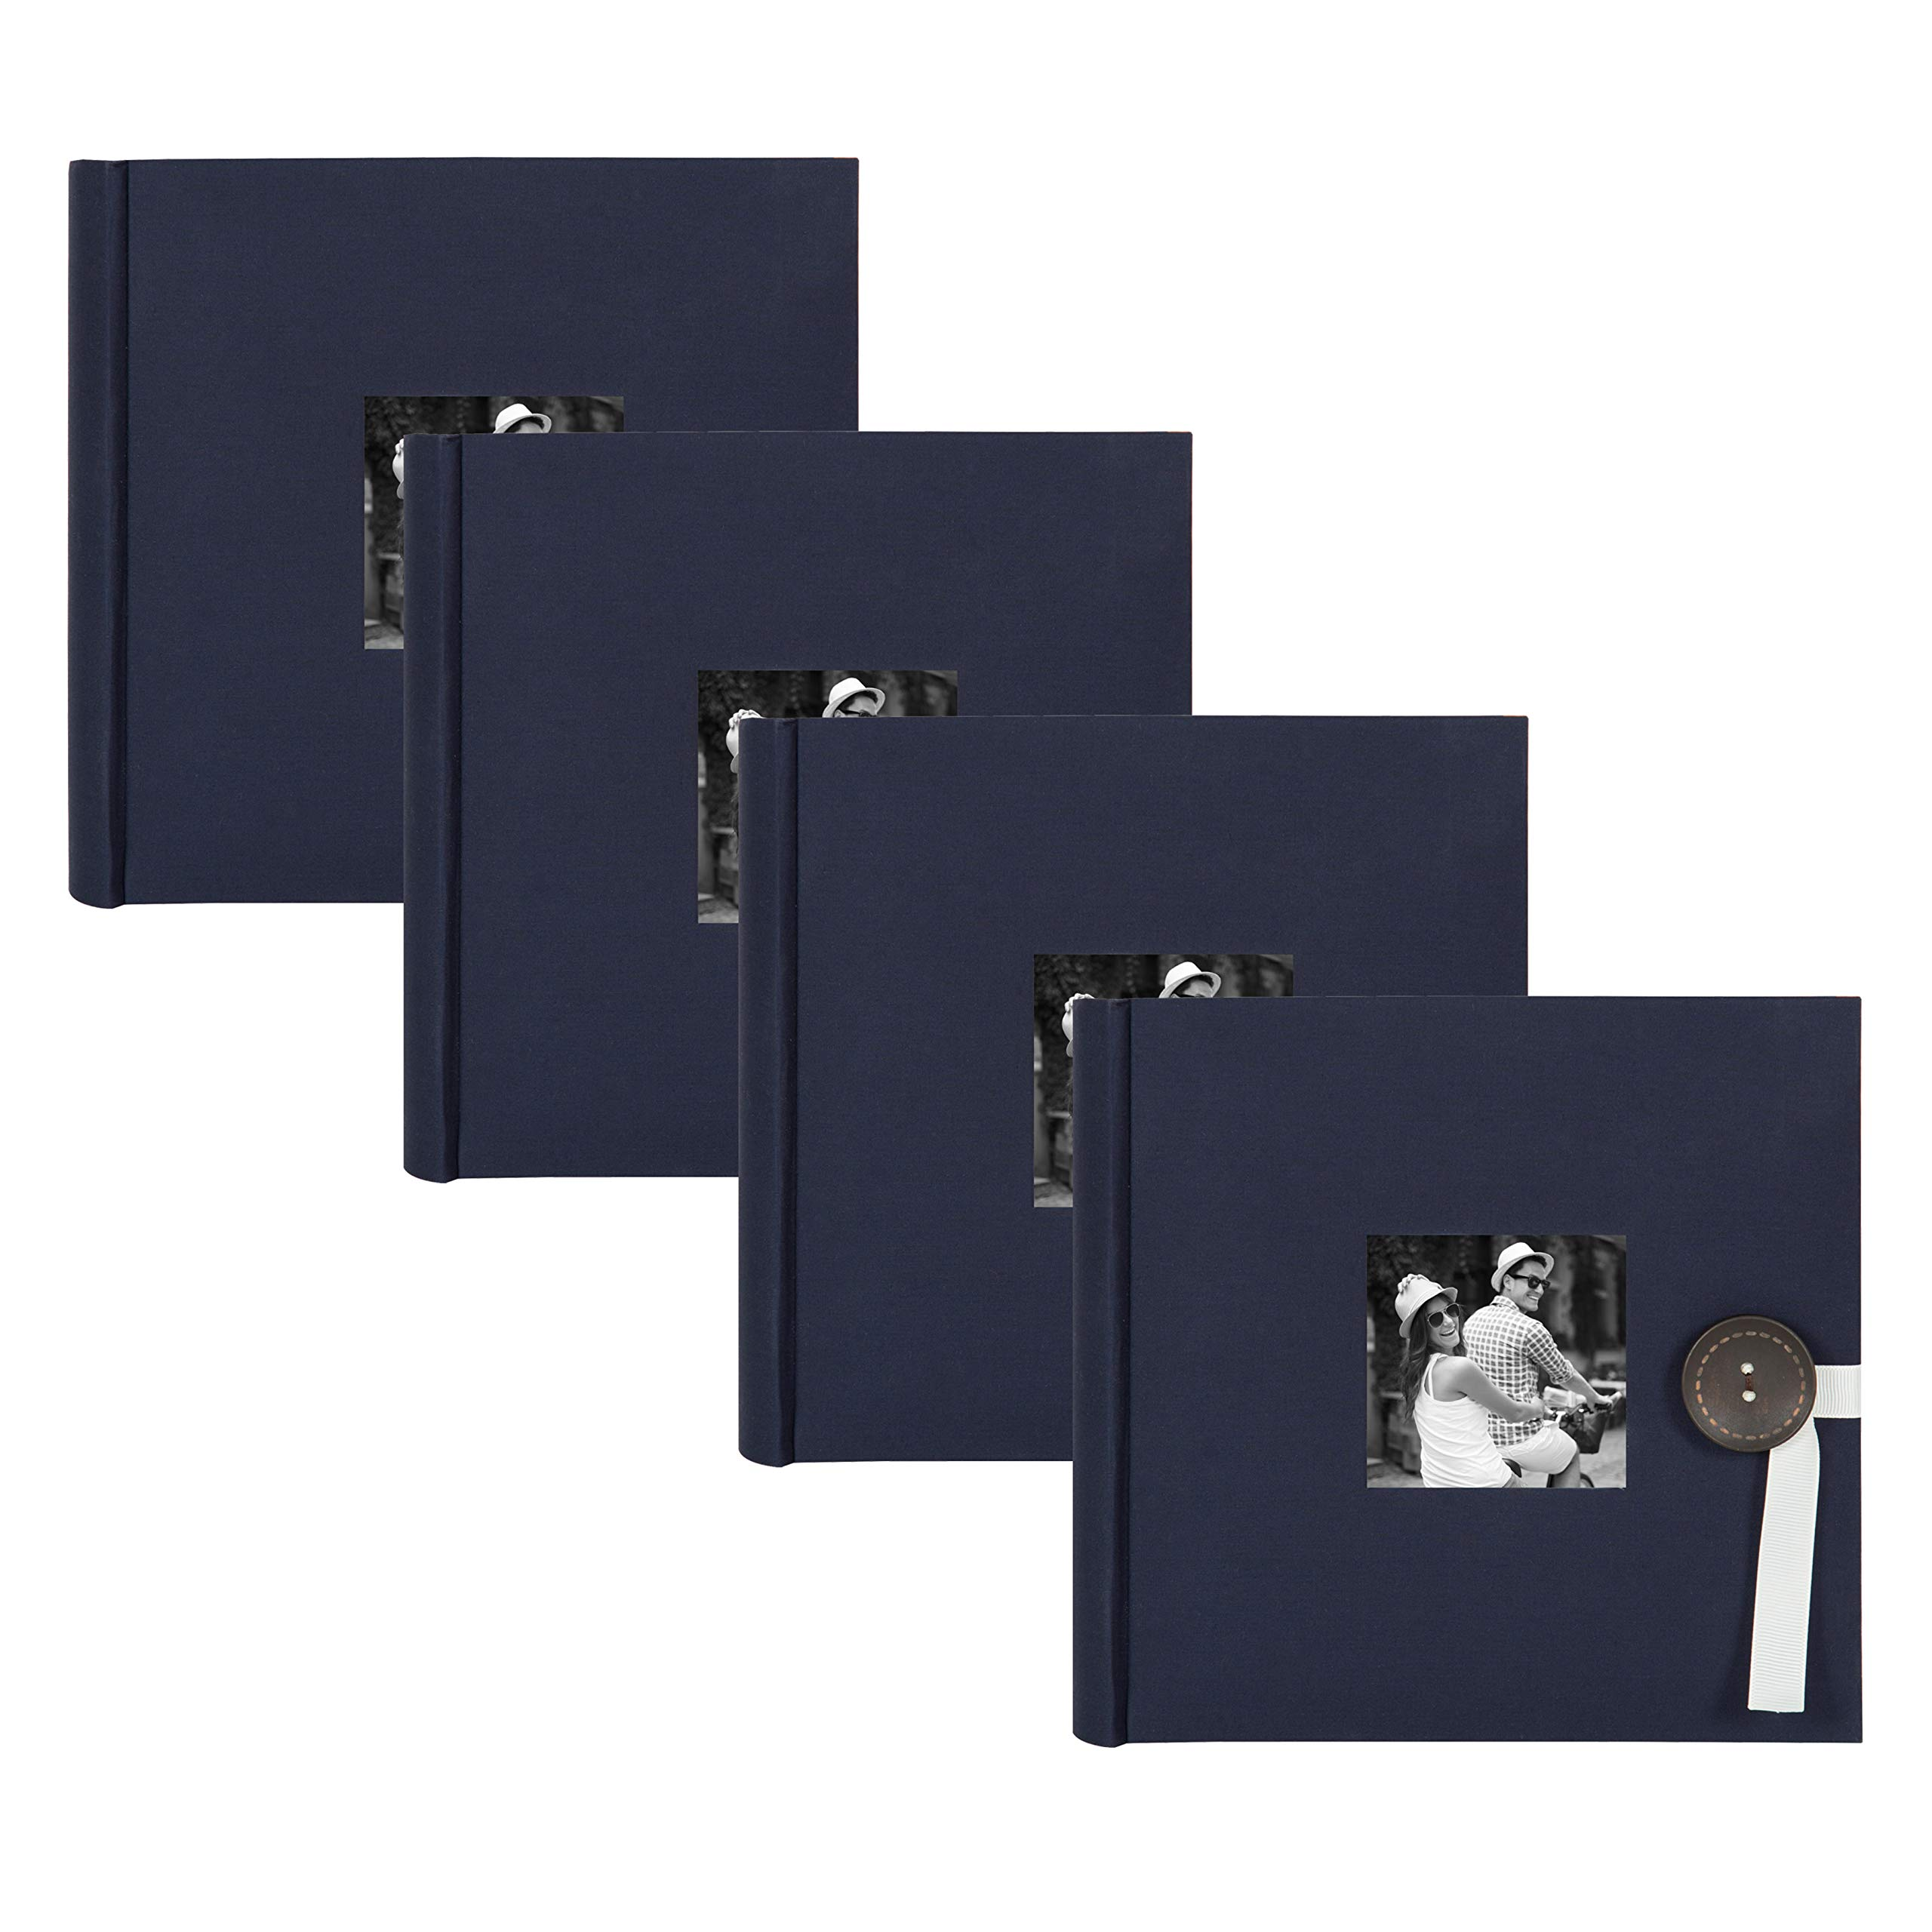 DesignOvation Kim Fabric Photo Albums with Ribbon and Button Closures, Holds 200 4x6 Photos, Set of 4, Navy Blue by DesignOvation